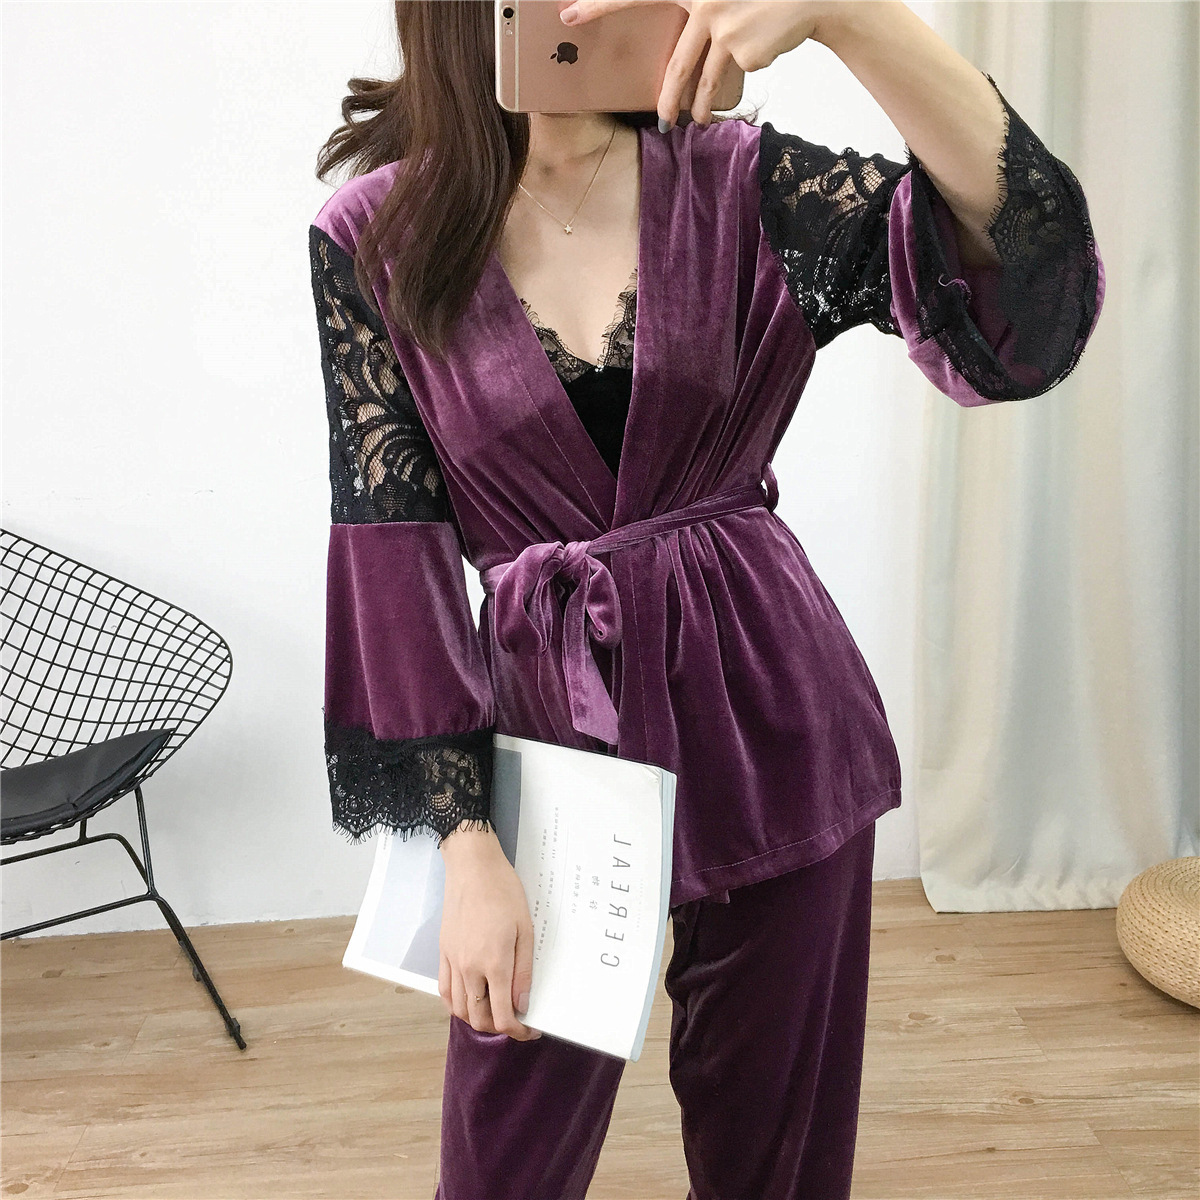 Lisacmvpnel 3 Pcs Gold Velvet Keep Warm Pajamas Lace Sexy Robe+Nightdress+Long Pant Set Pyjama For Women